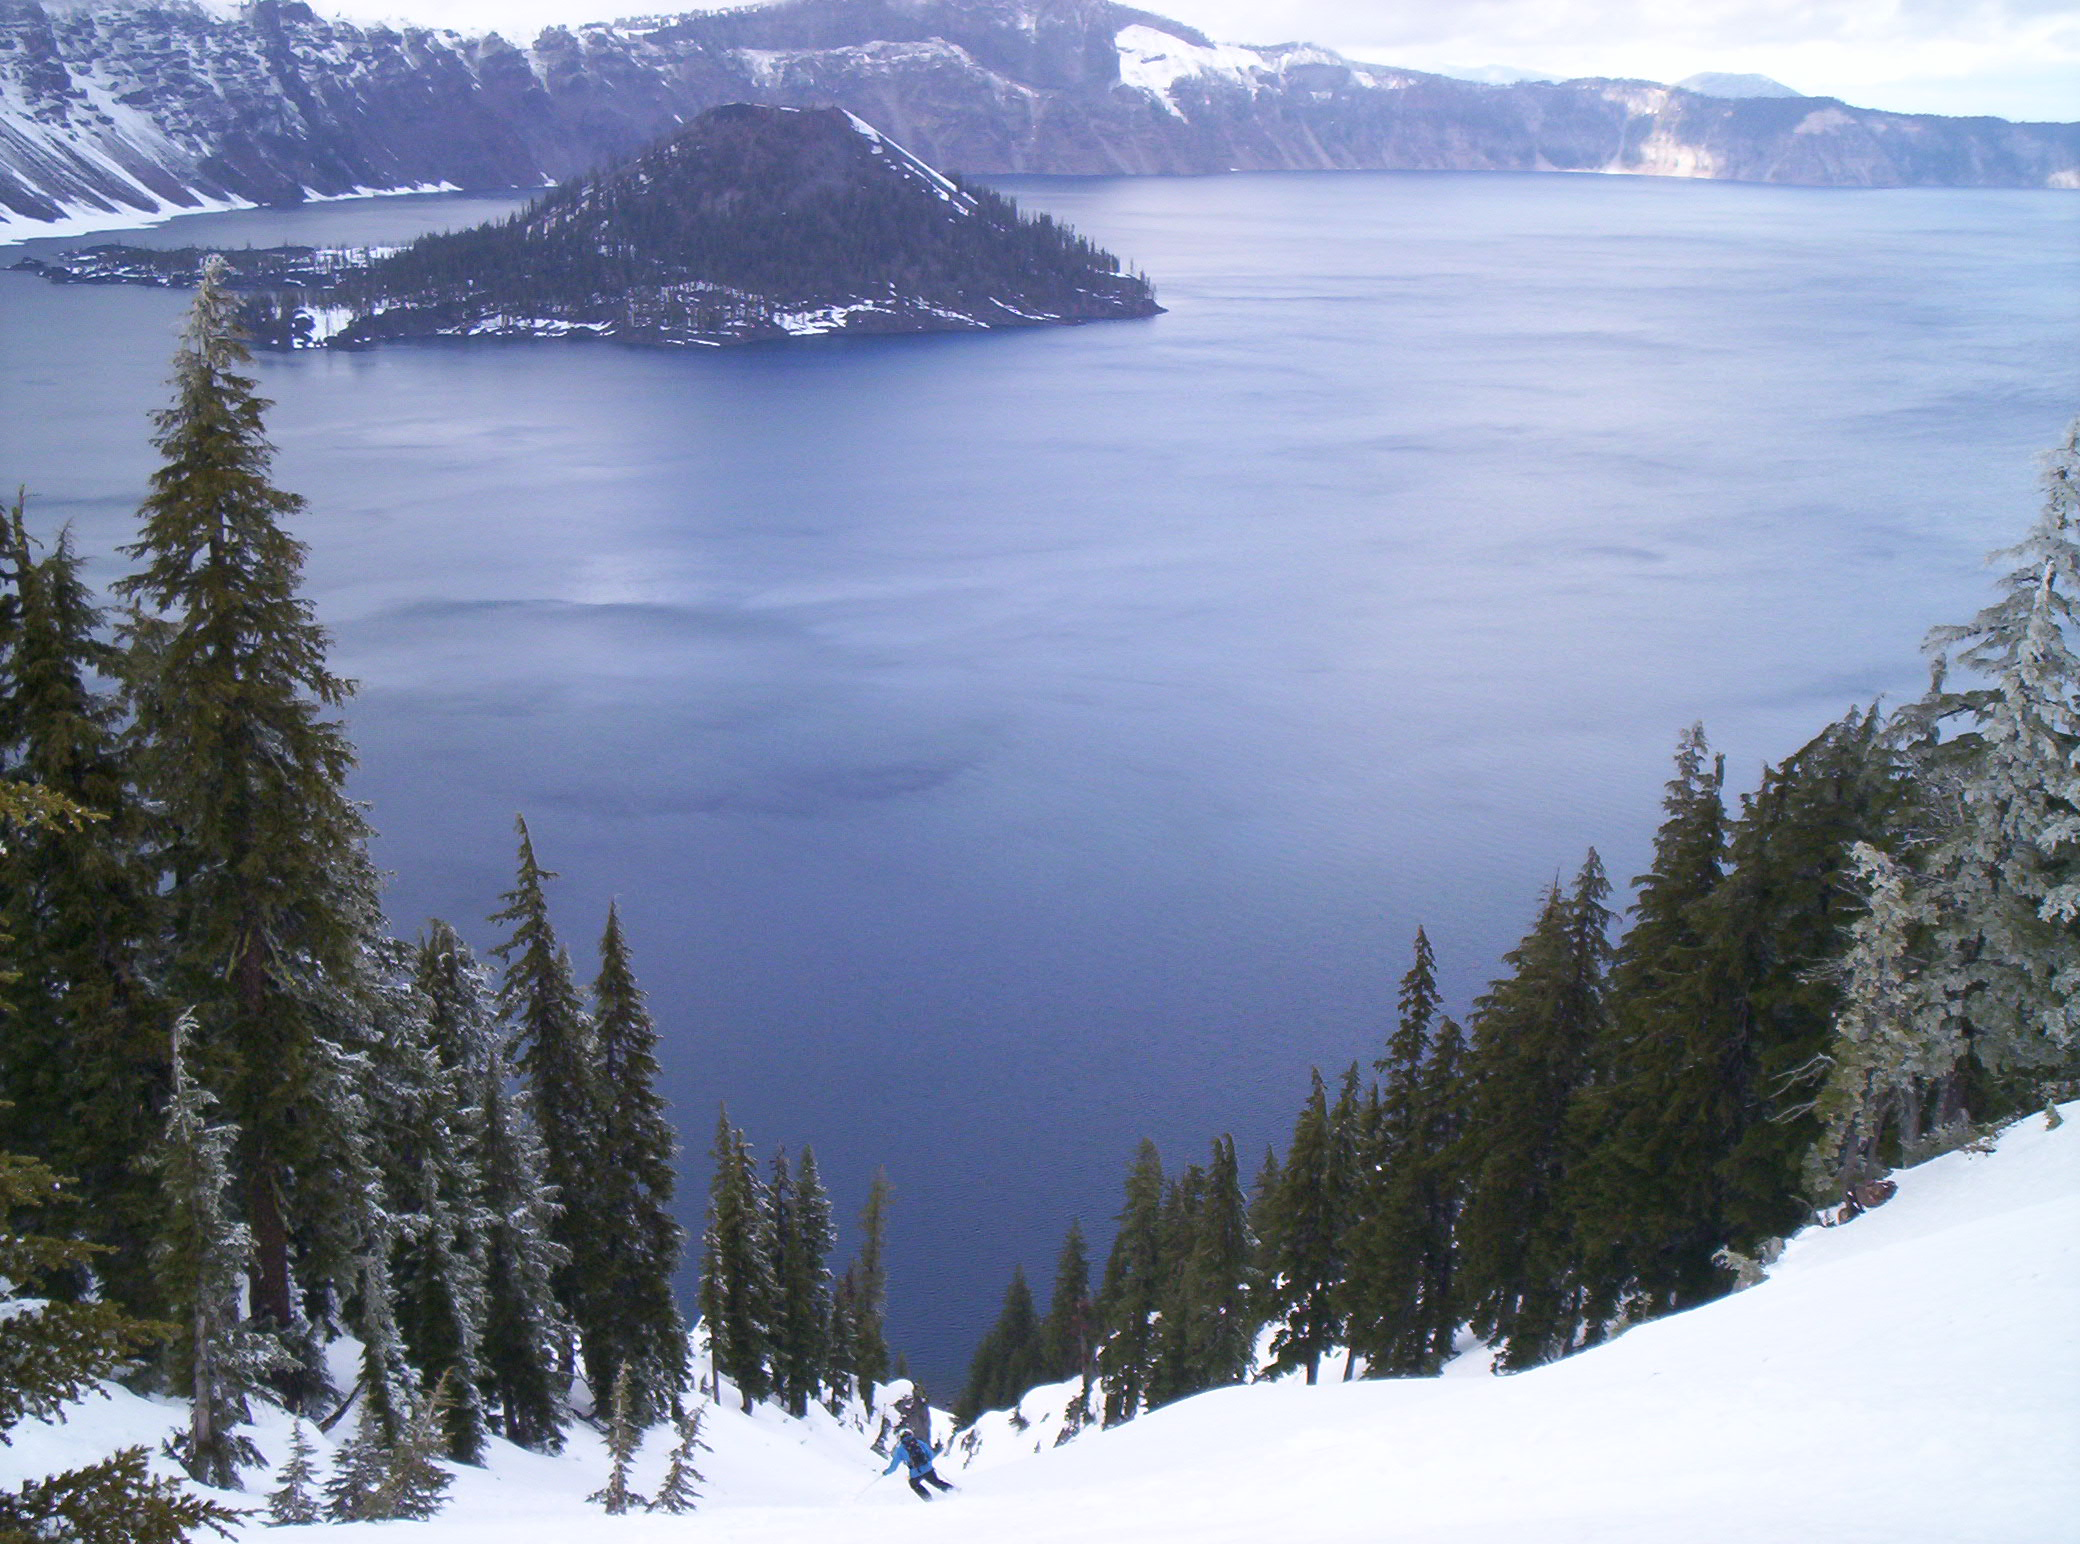 Skiing in to Crater Lake